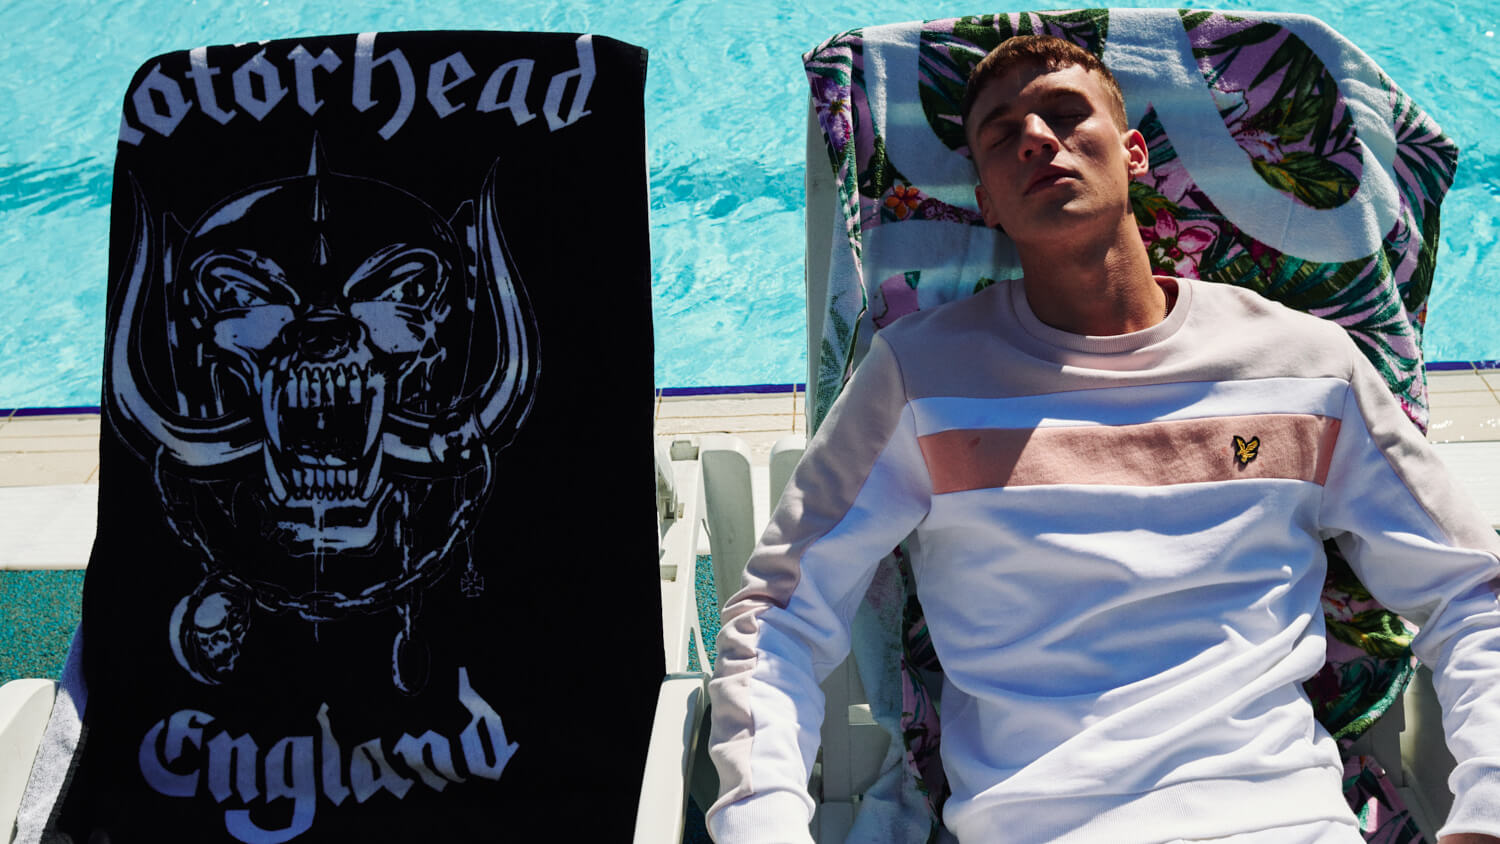 Lad  sits on sunlounger next to motorhead towel